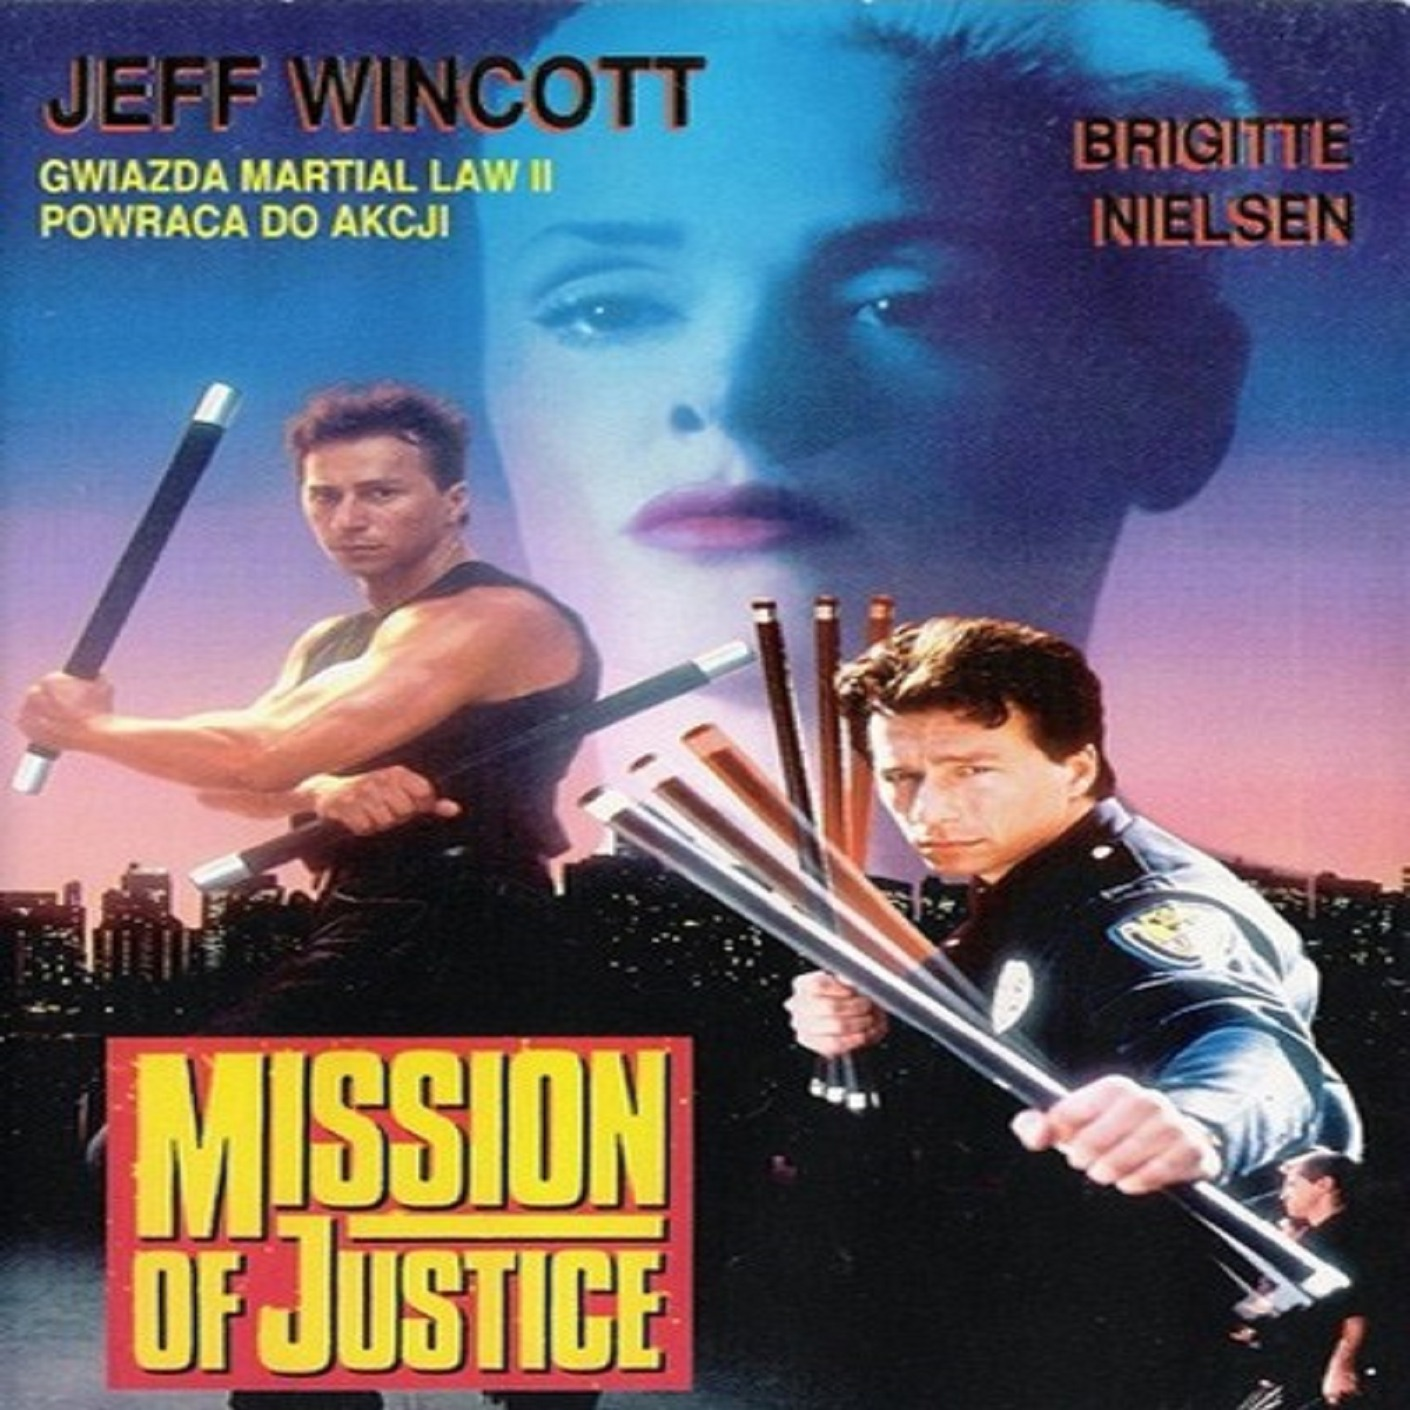 GVN Presents: They Called This a Movie - Mission of Justice